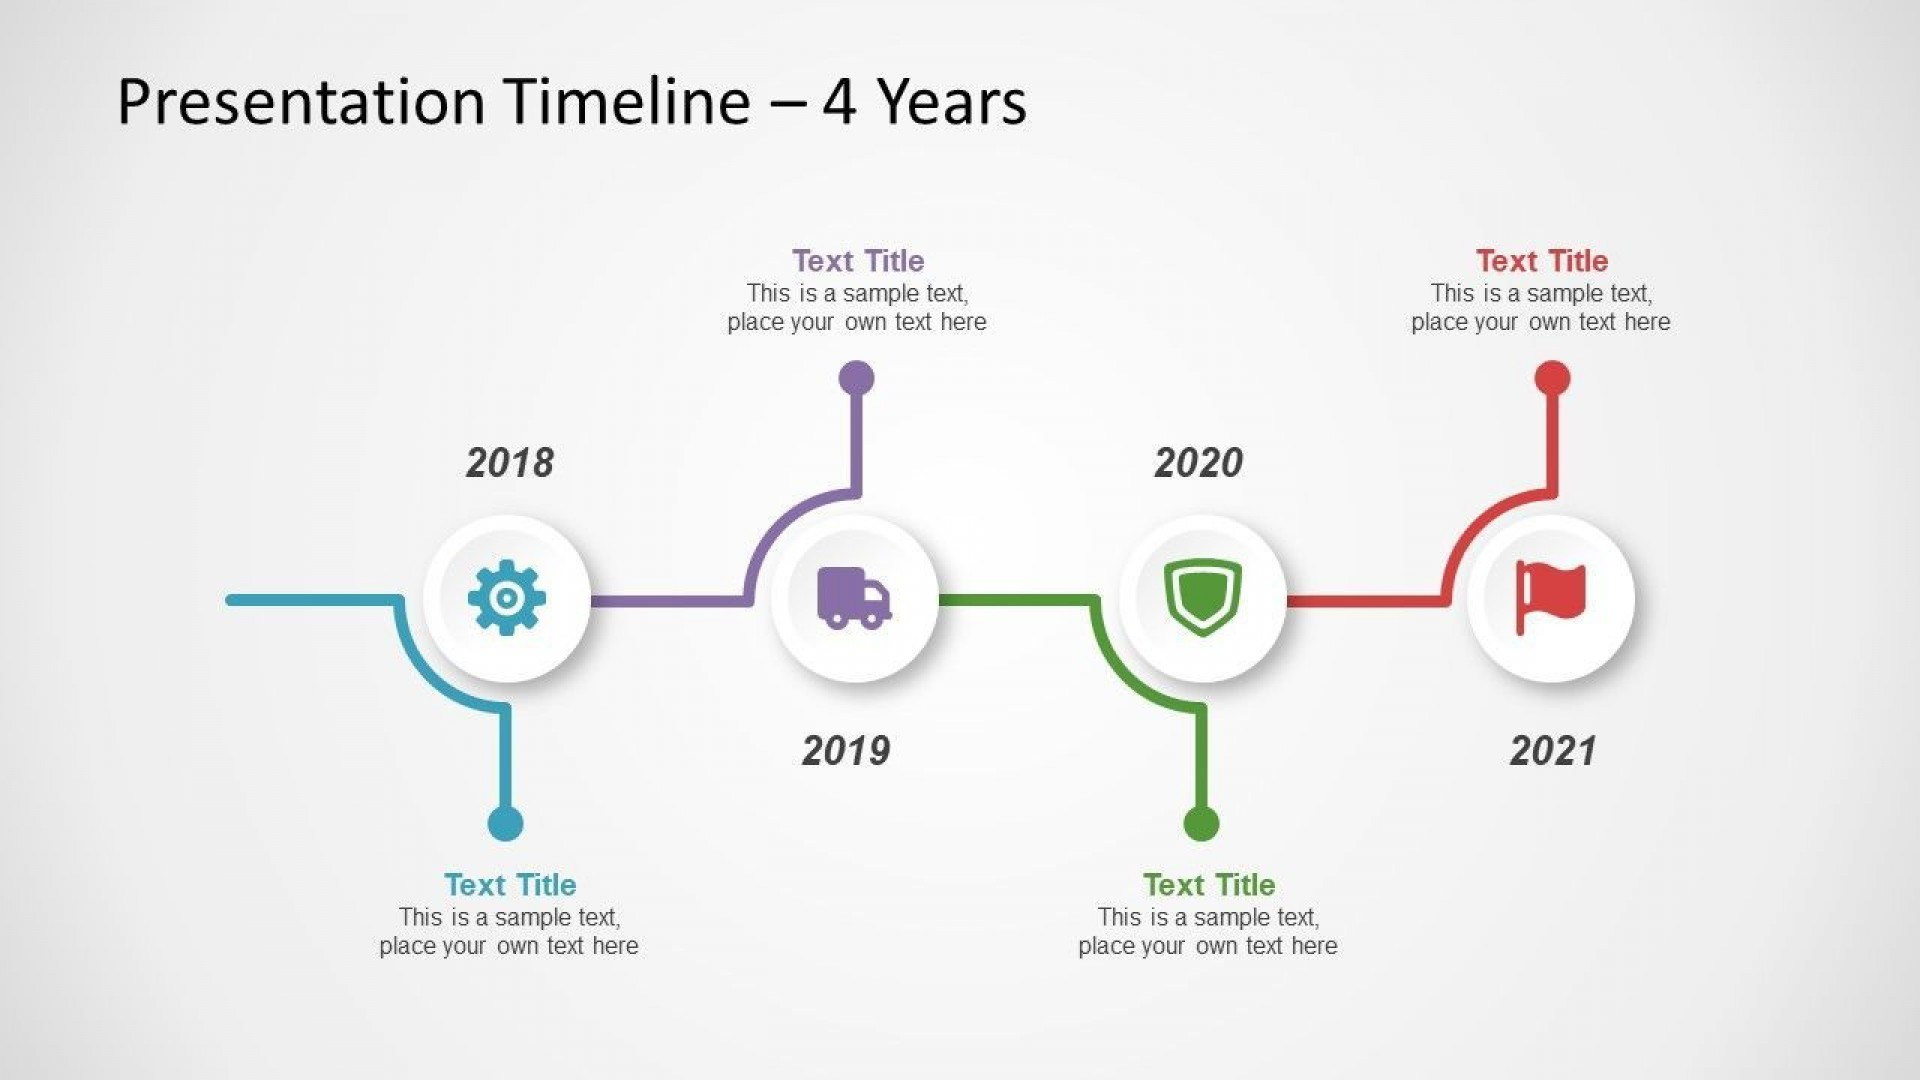 003 Wondrou Timeline Template For Powerpoint Example  Presentation Project Management Mac1920